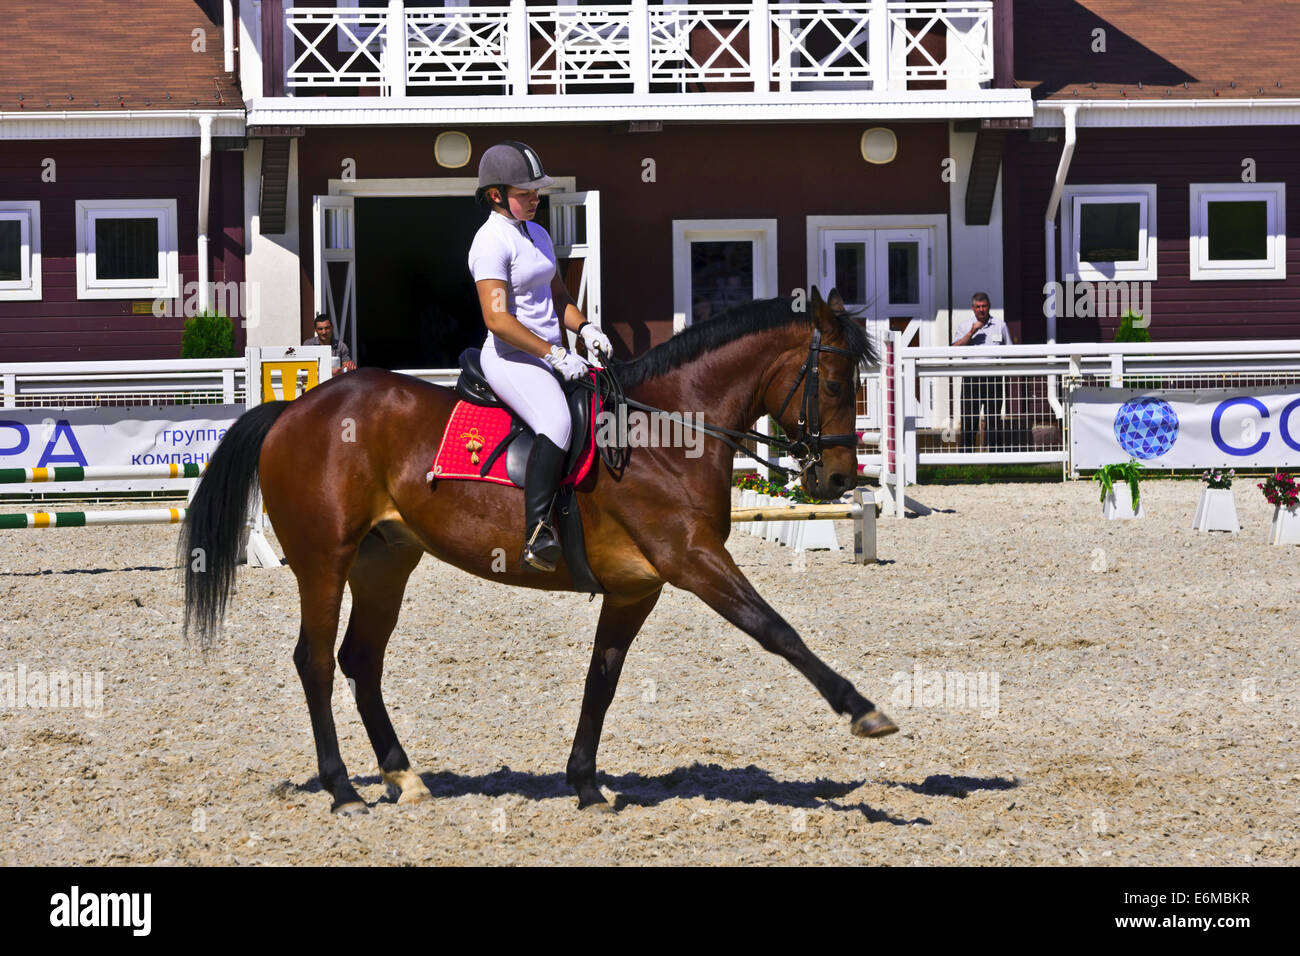 Female rider on a dark Arabian pure bred horse demonstrating dressage at the Groumant Horse Show in Tula, Russian - Stock Image